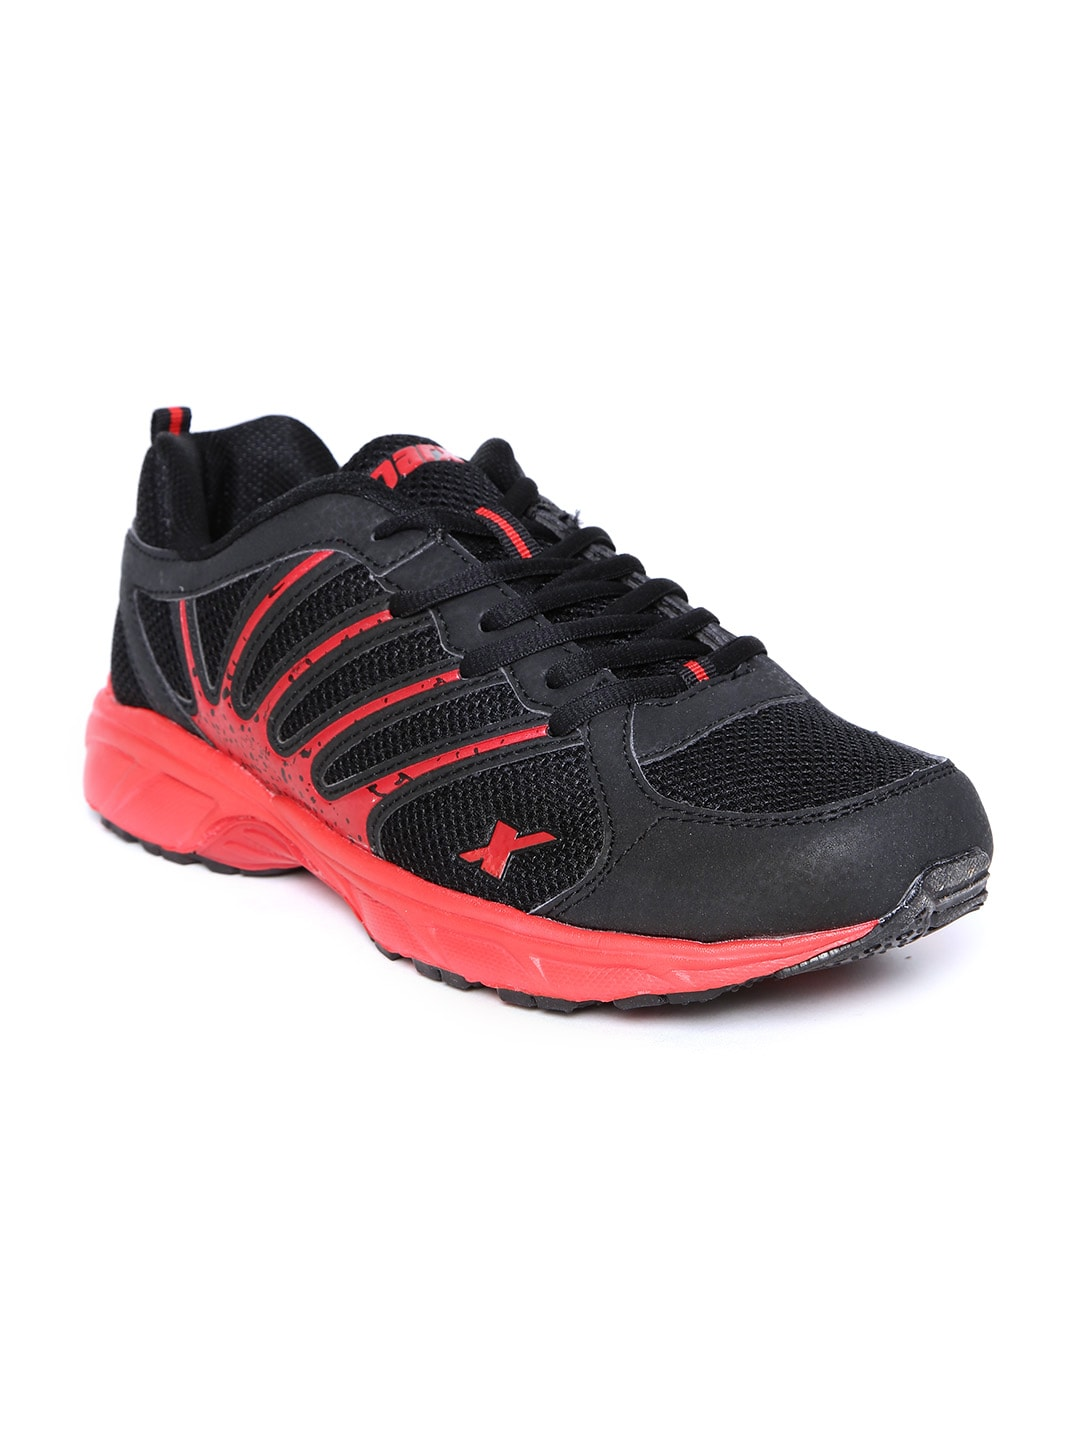 994c56d8a04 Sparx Shoes - Buy Sparx Shoes for Men Online in India